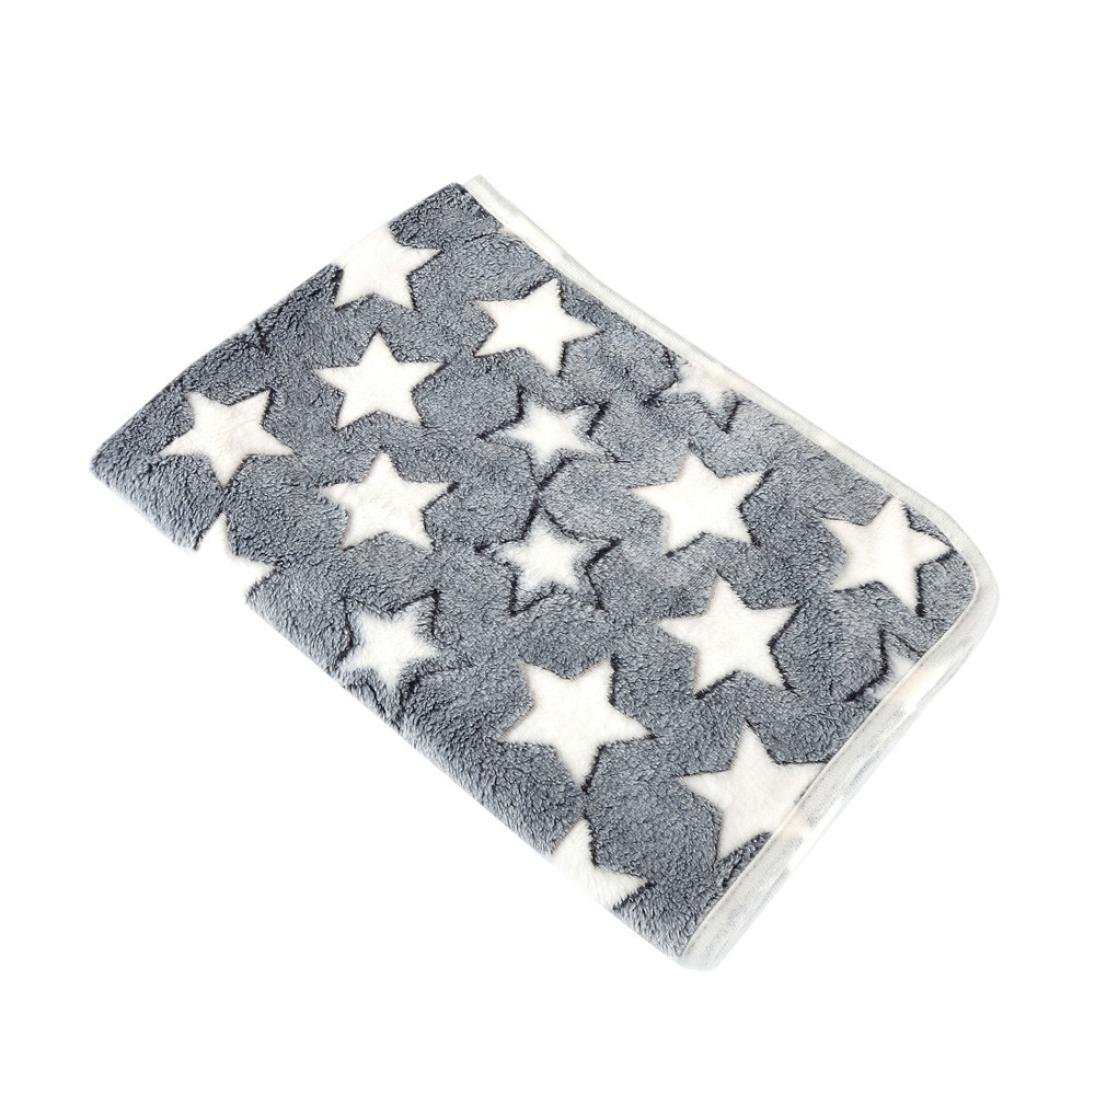 OOEOO Pet Throw Blanket for Dog Cat Bed Rest Breathable Pet Cushion Soft Warm Sleep Mat (Gray, 40x60CM)